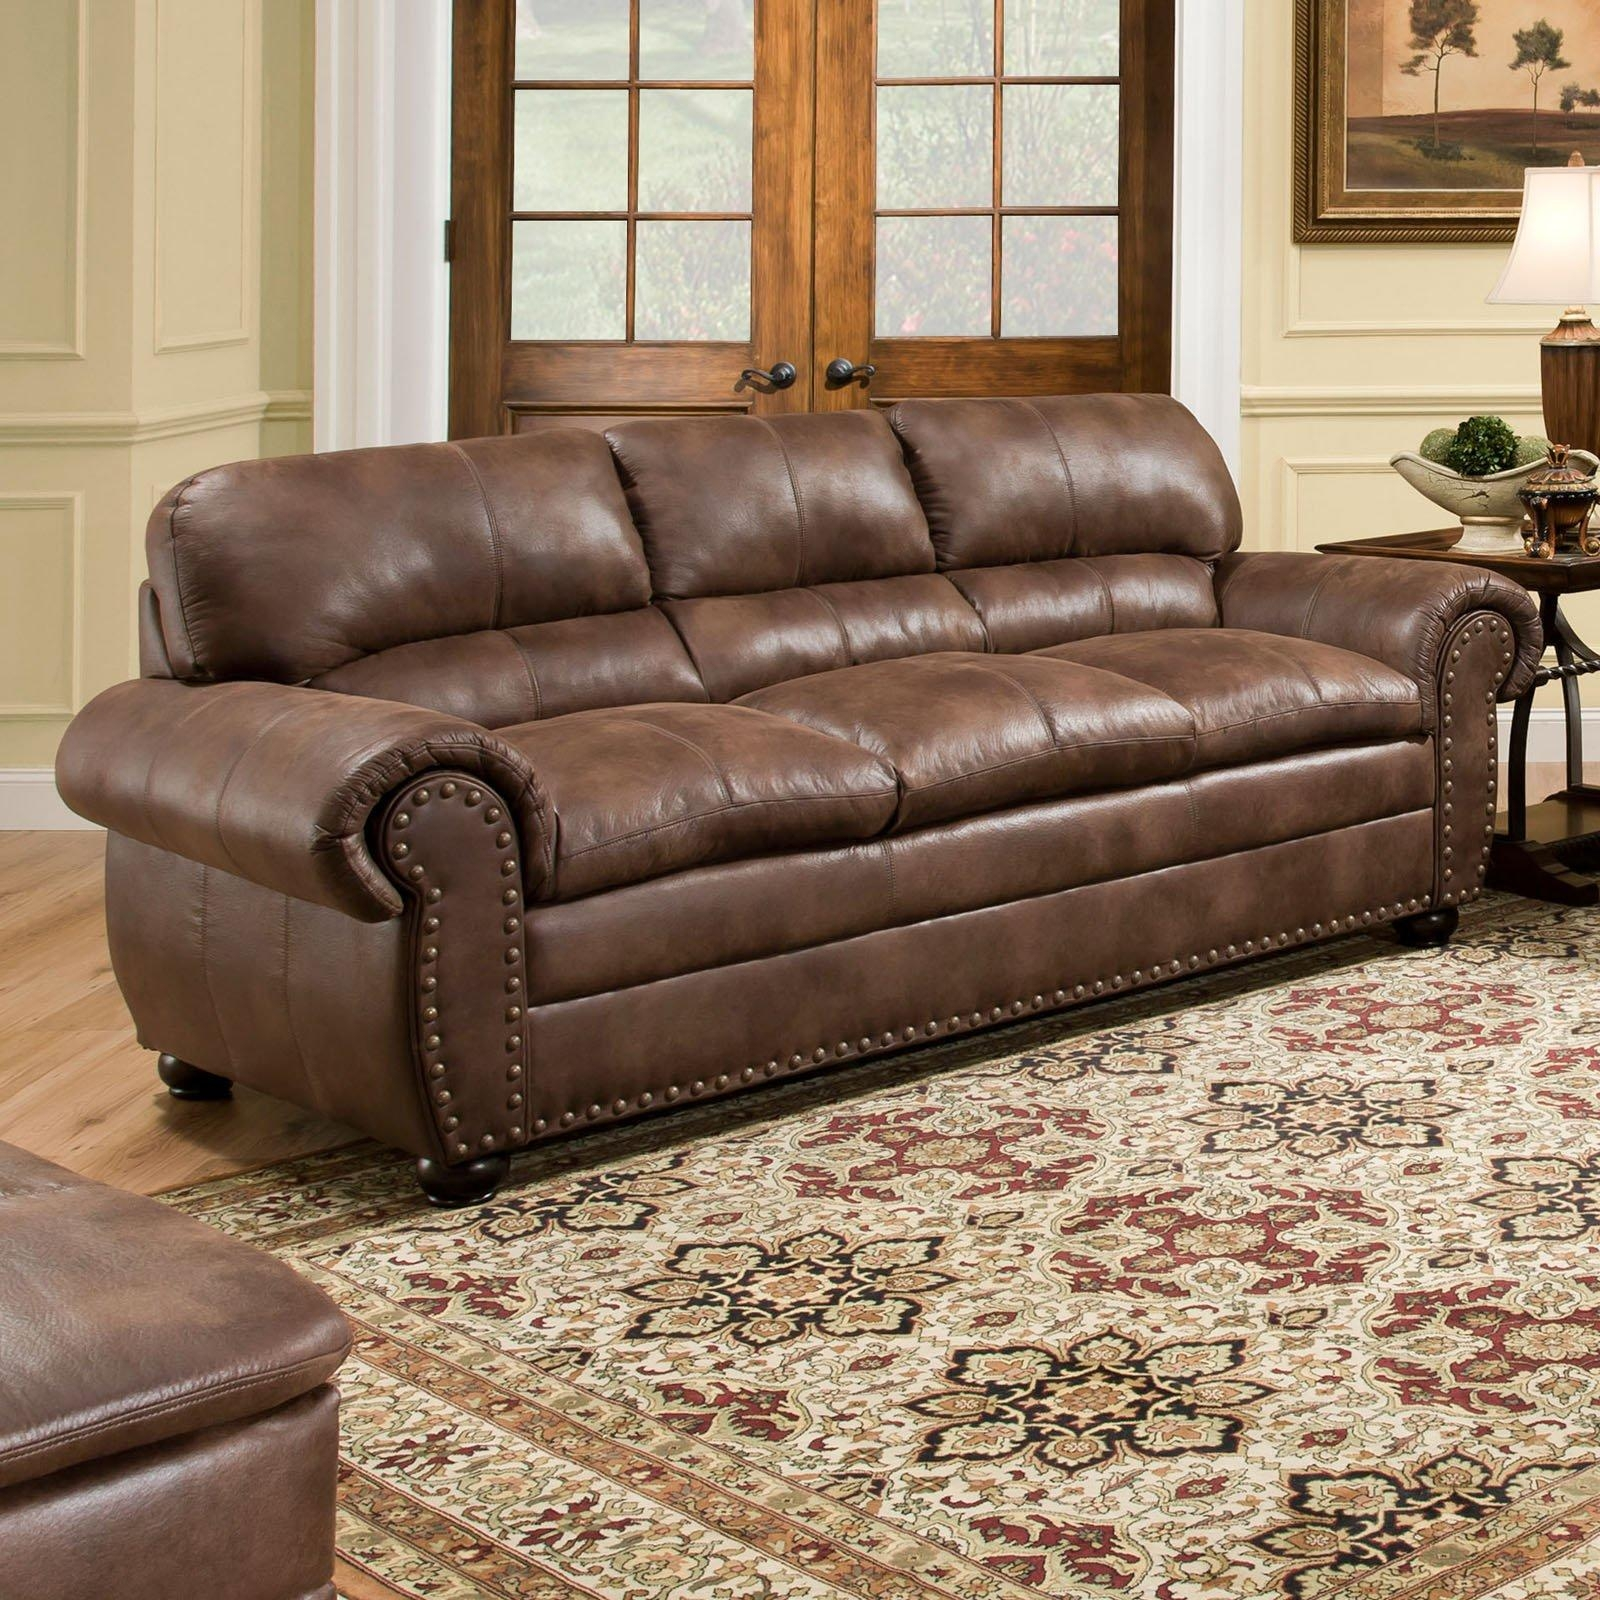 Simmons Upholstery Padre Sofa – Espresso | Hayneedle Regarding Simmons Sofas And Loveseats (View 16 of 20)